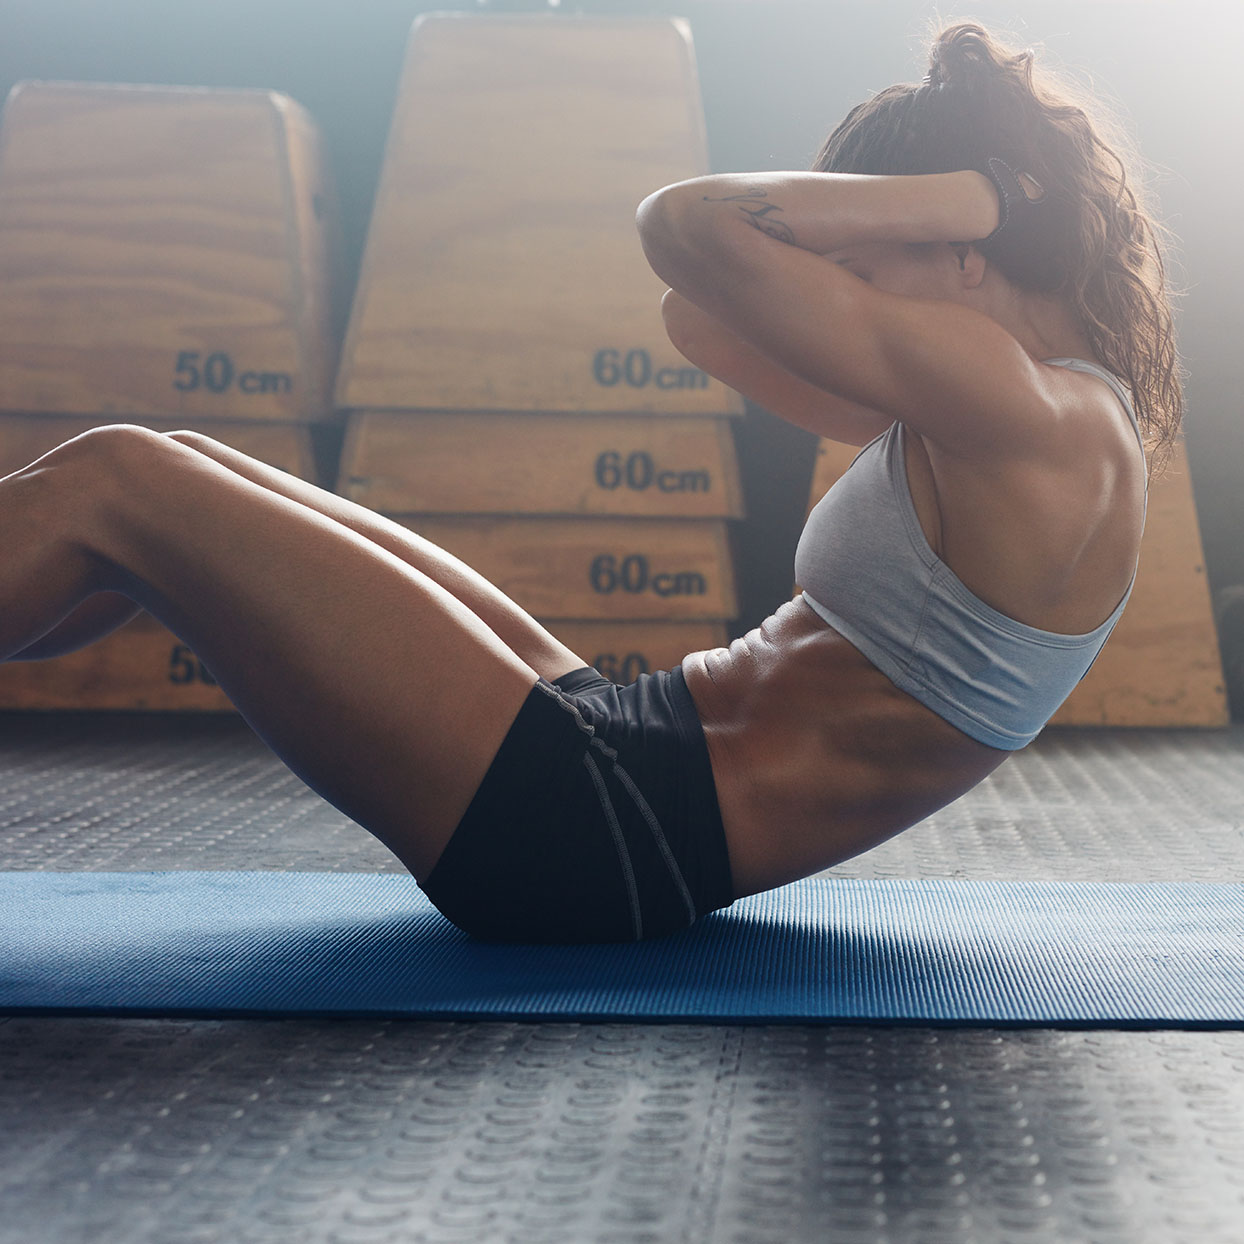 A woman does sit-ups to improve her core and abs